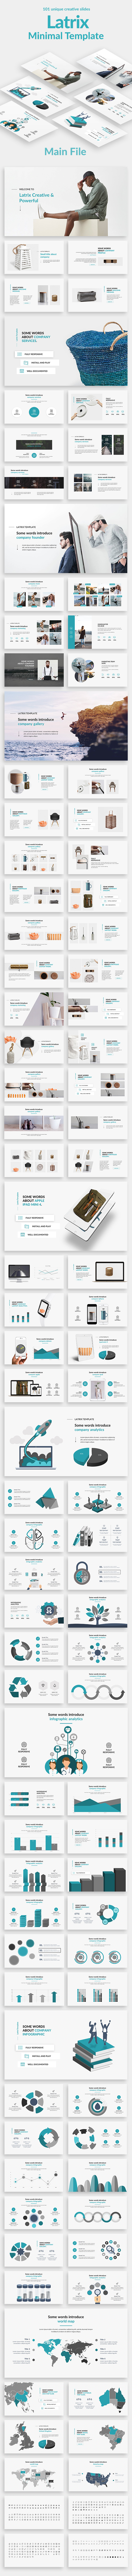 Latrix Minimal Keynote Template - Creative Keynote Templates